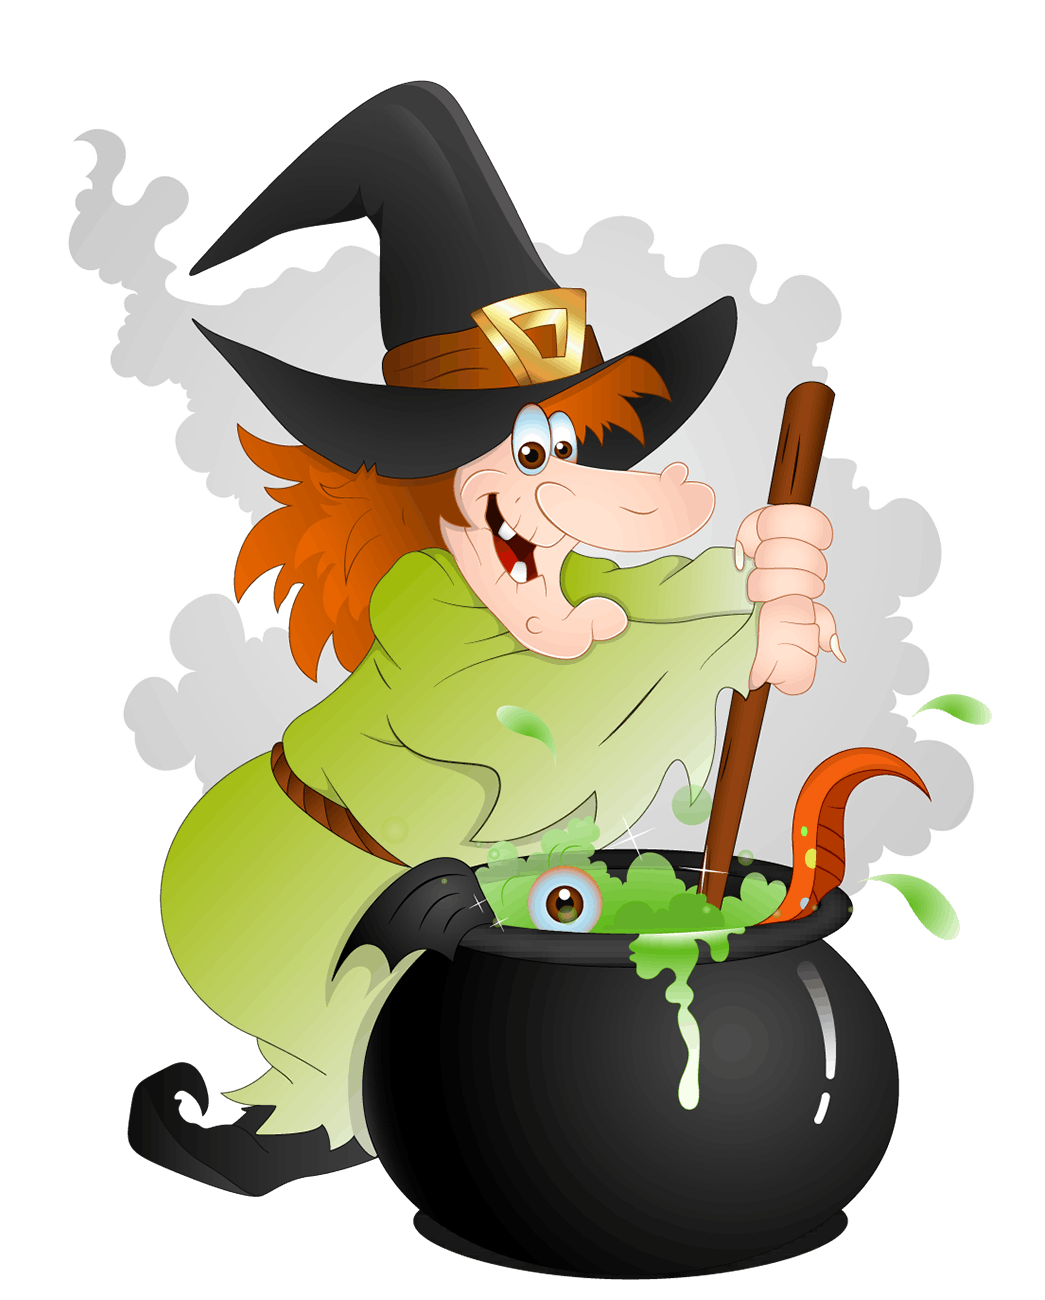 Witches Brew Scented Oil.